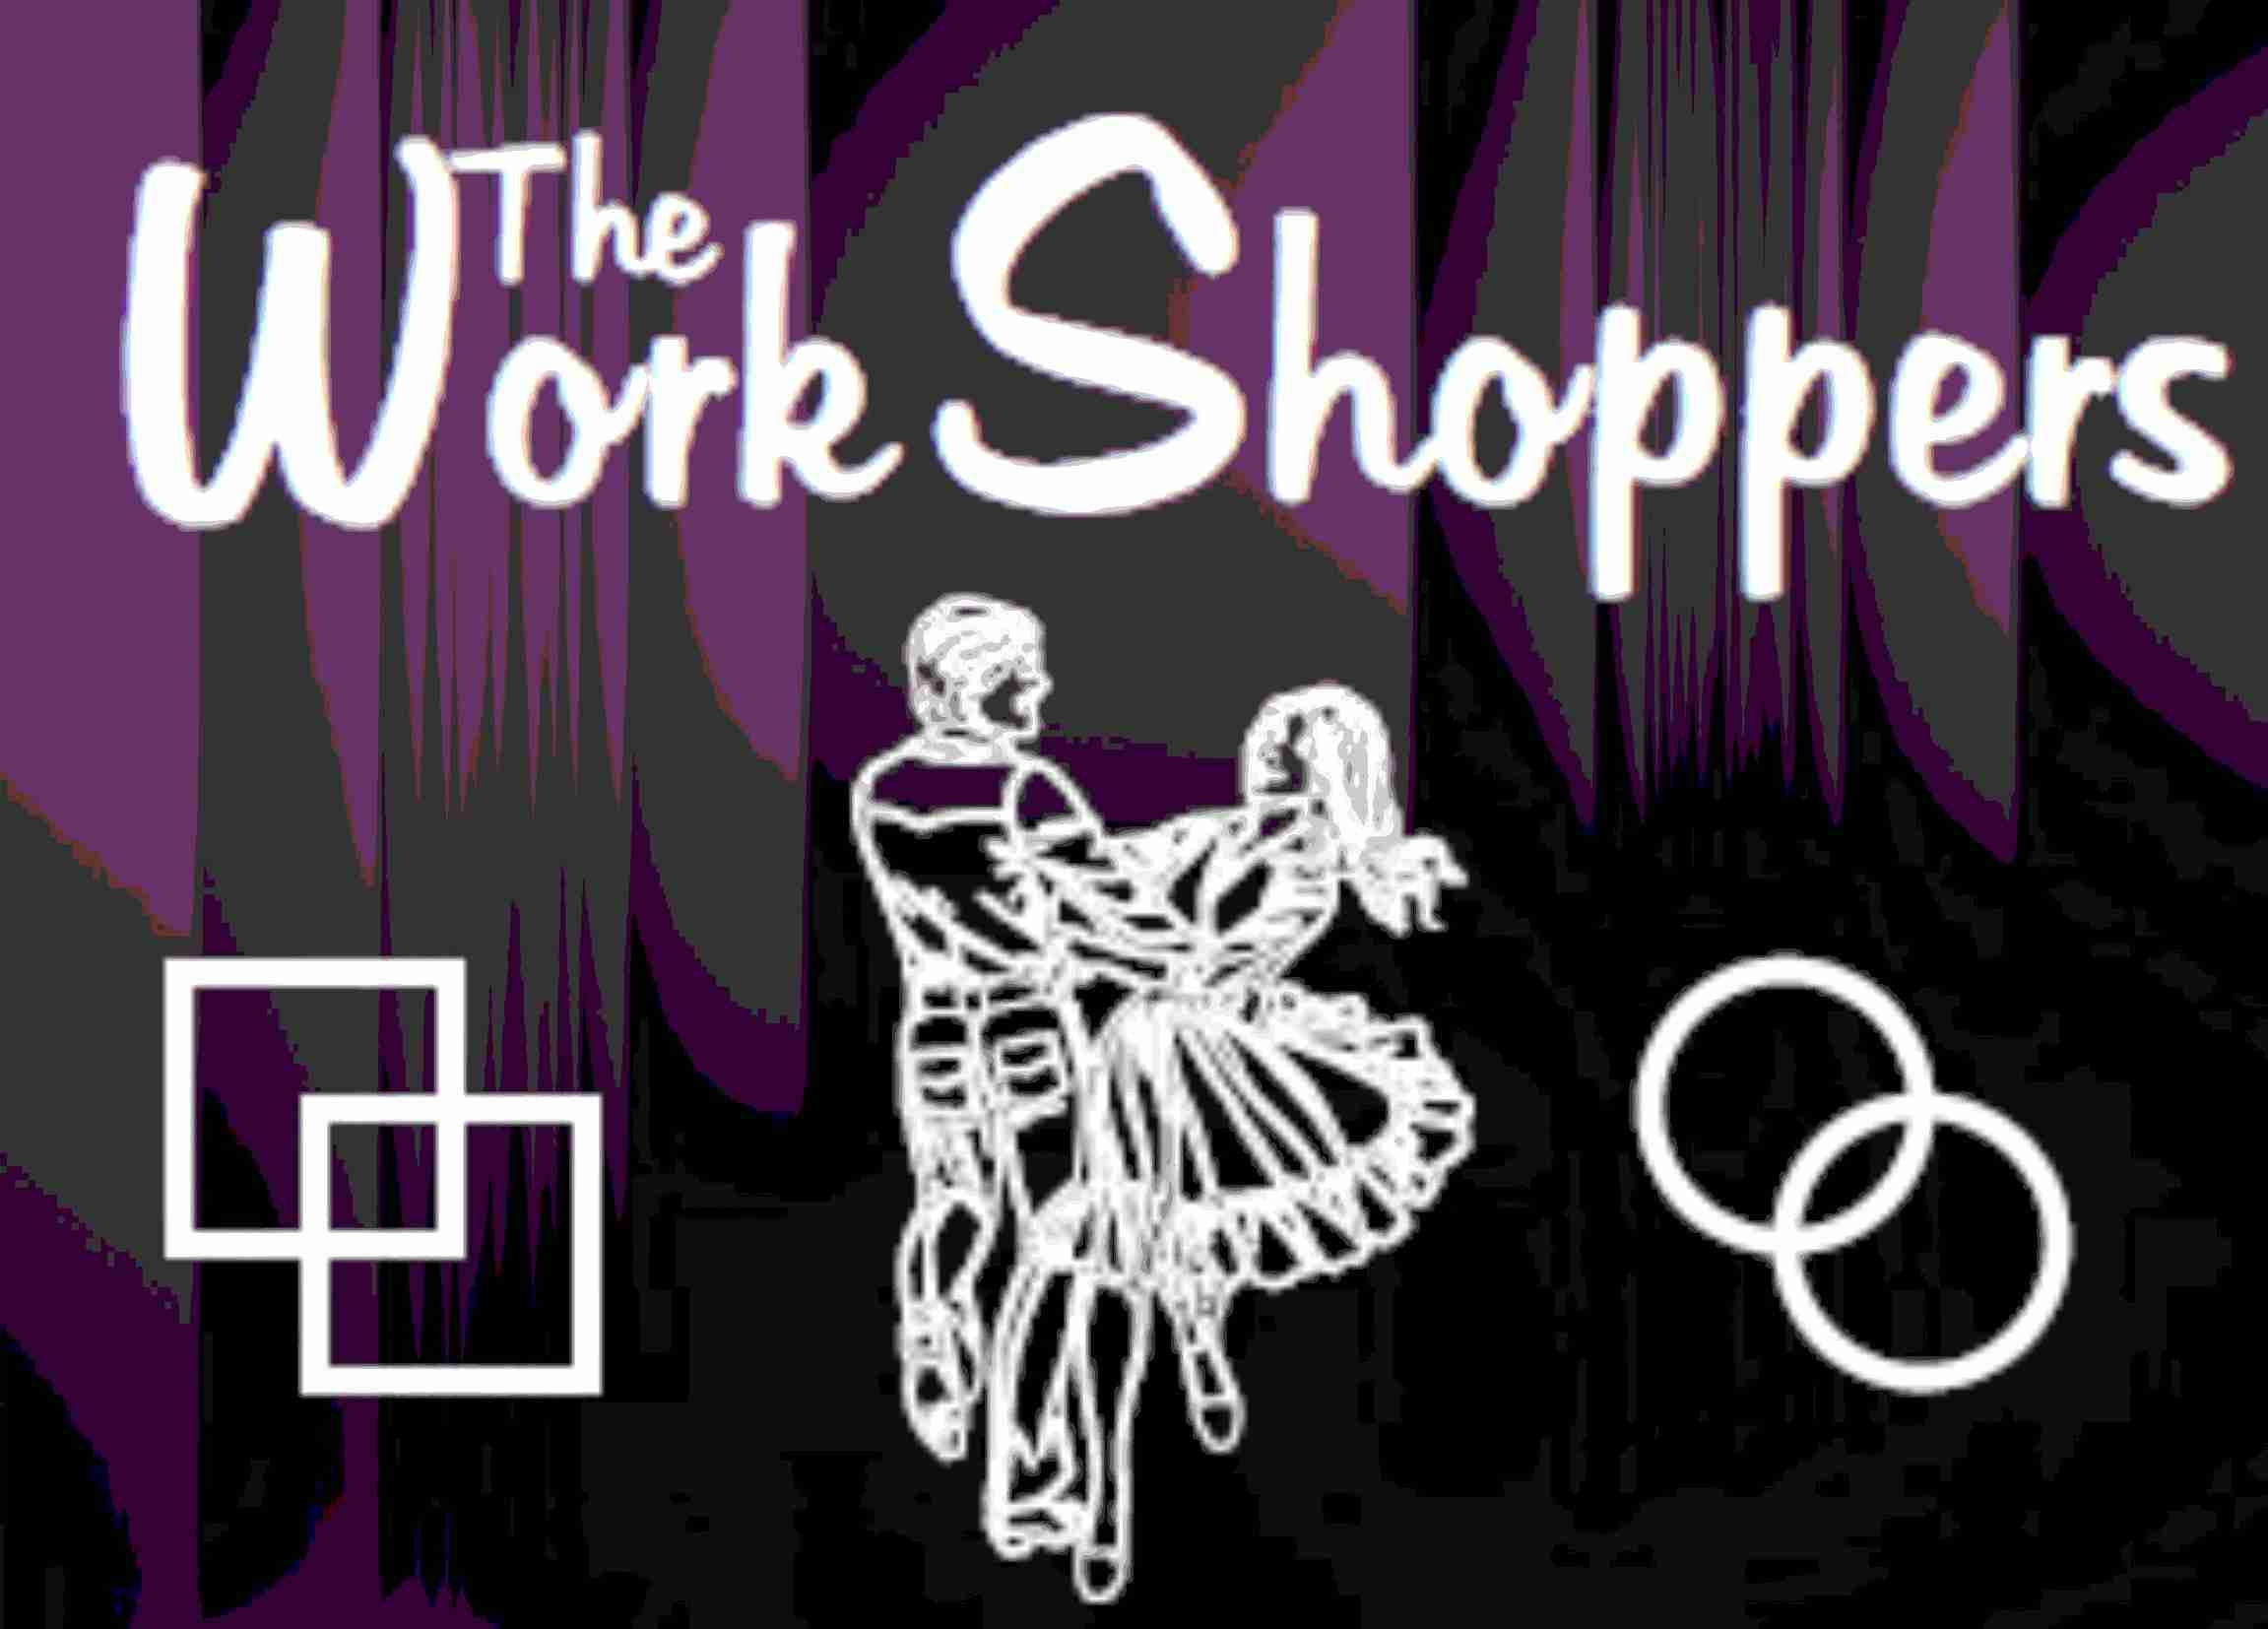 The Work Shoppers